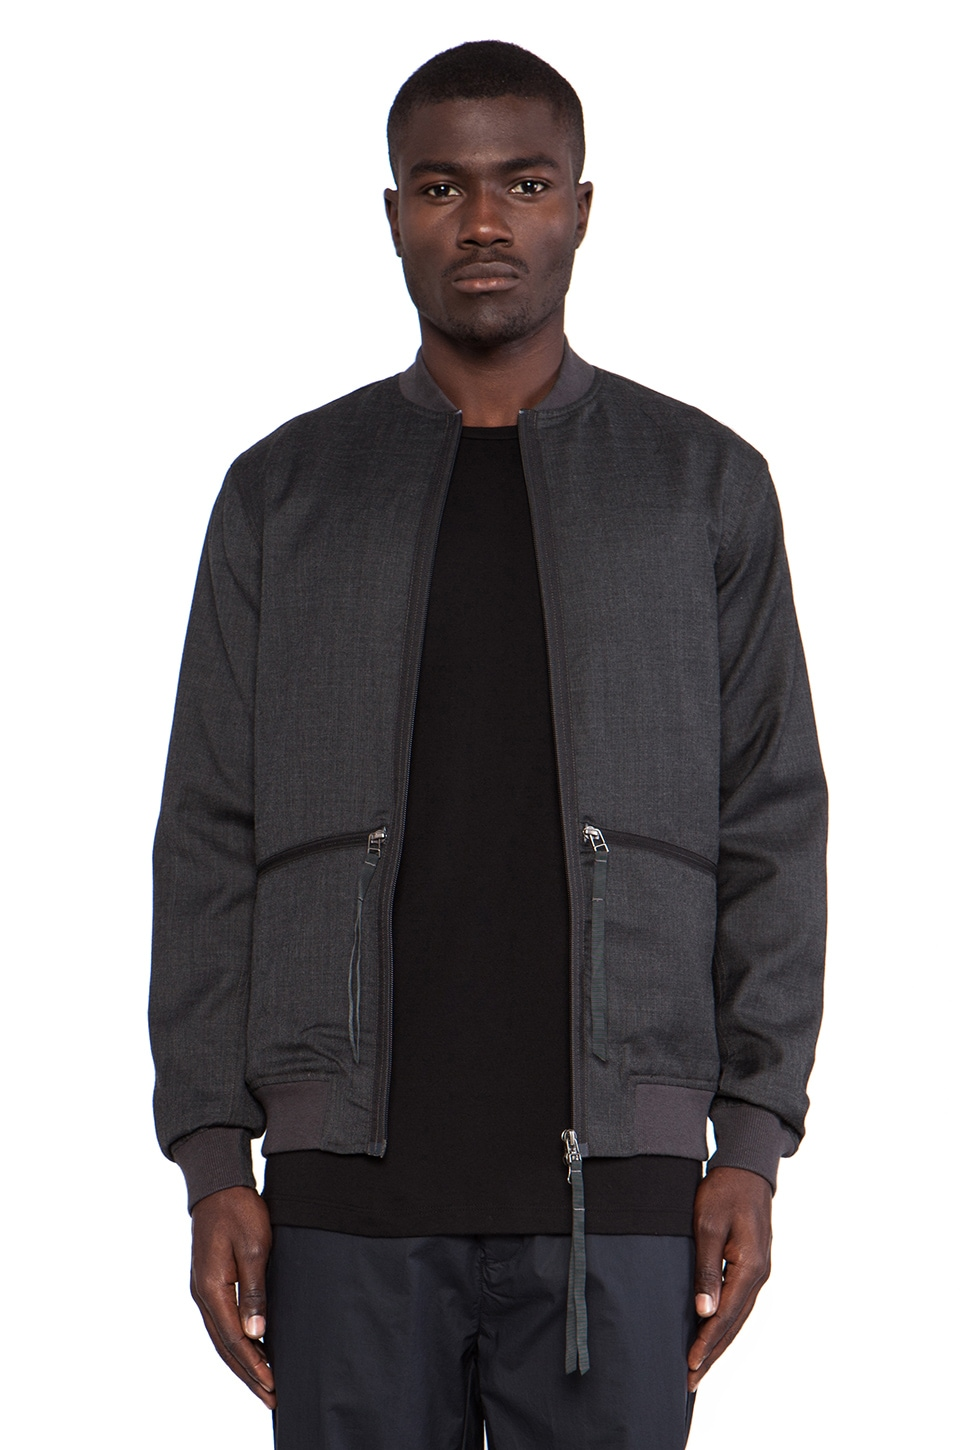 Maharishi Official Short Flight Jacket in Charcoal